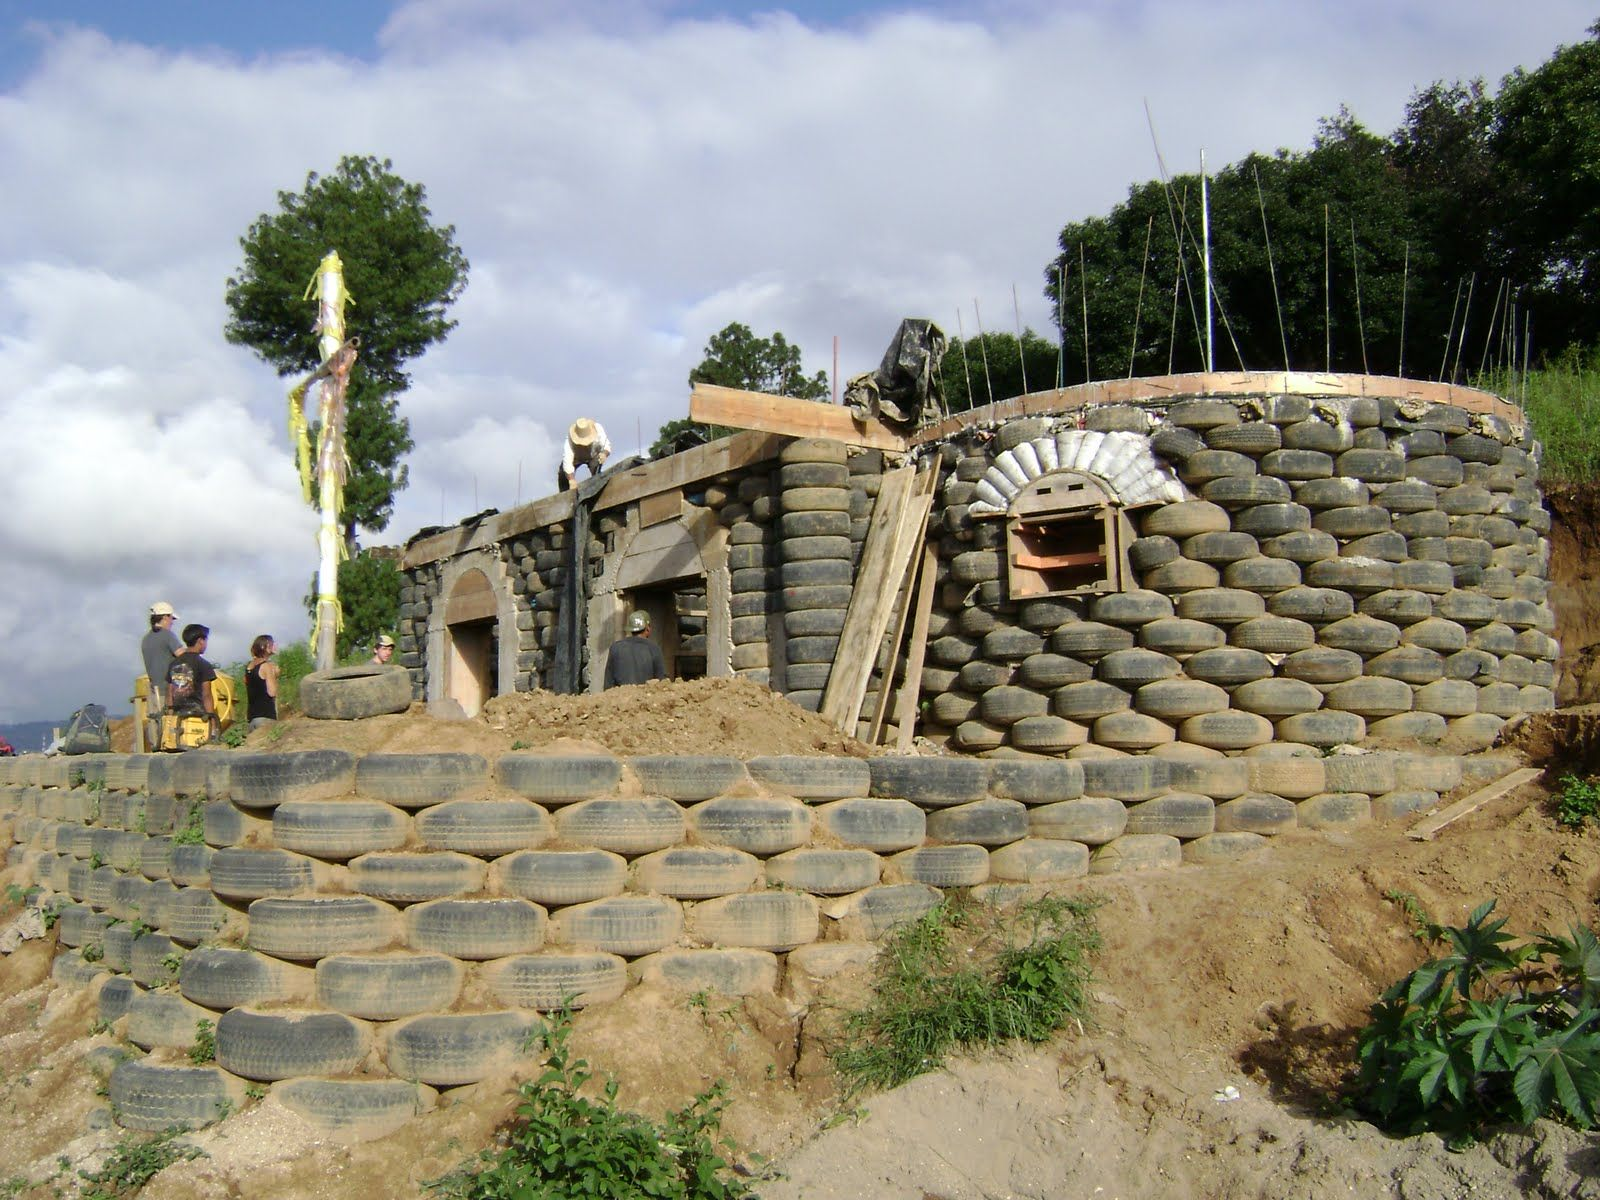 Paxan school building 1 with tire retaining wall in for What can you make out of old tires